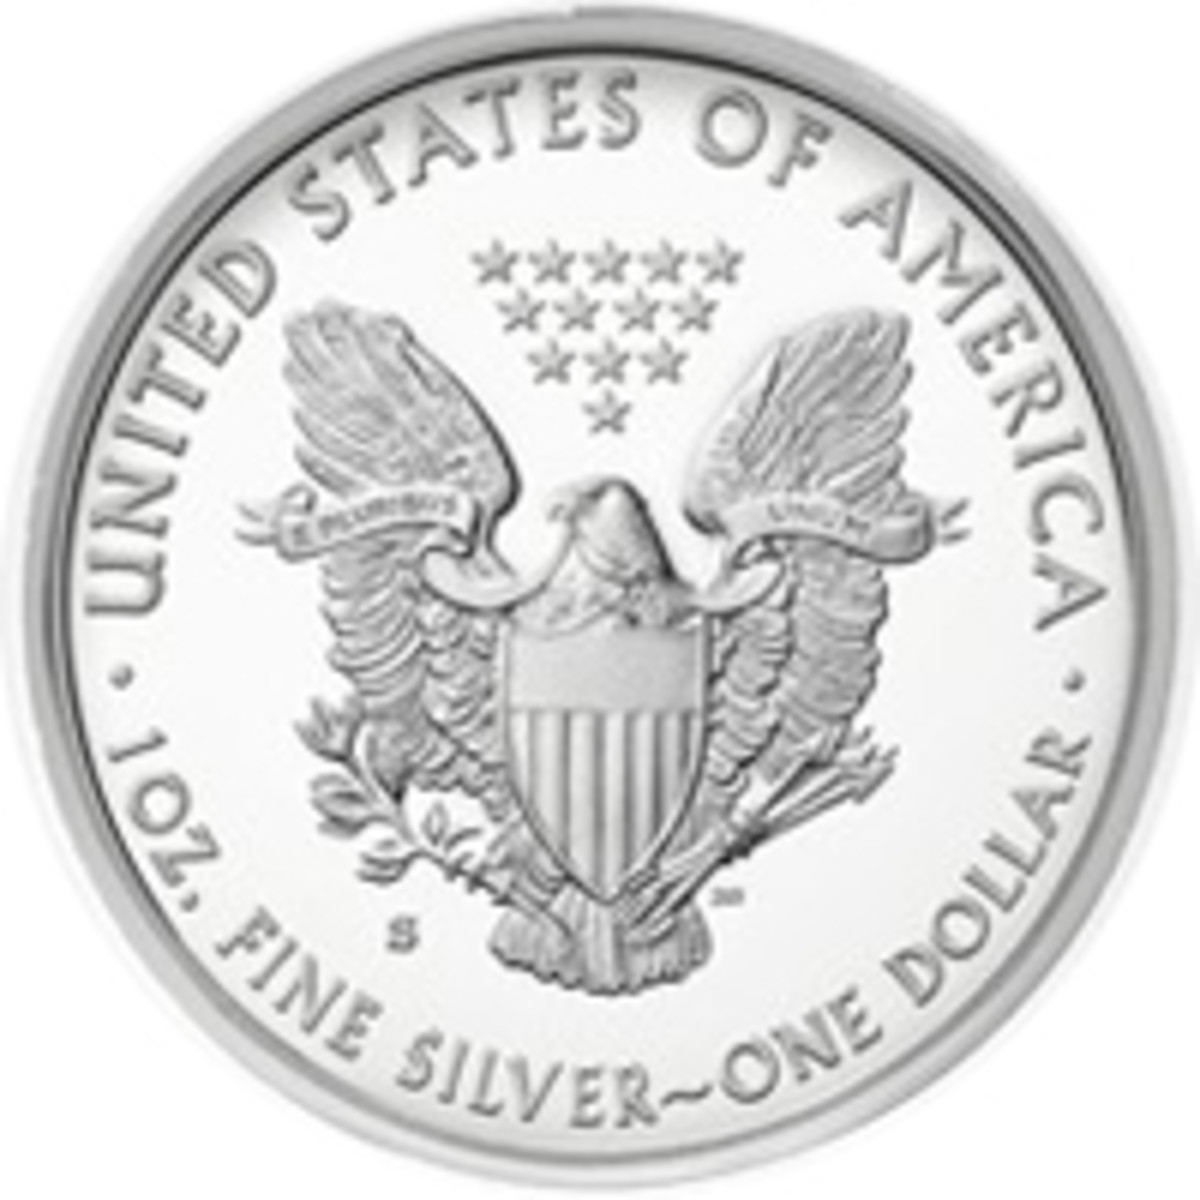 2017-S proof silver American Eagle reverse